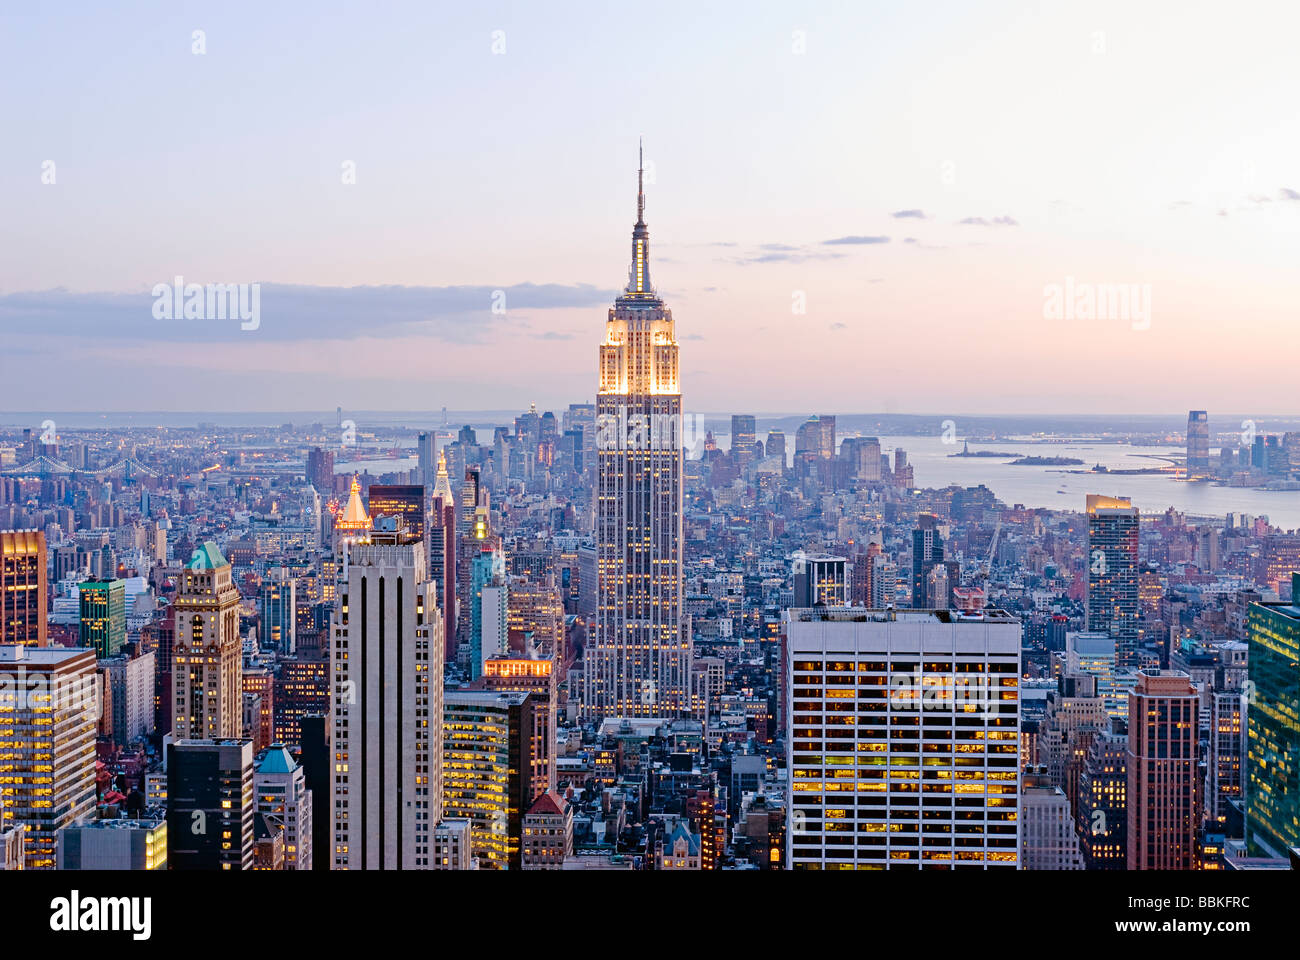 aerial view of the manhattan skyline with the empire state building stock photo 24401088 alamy. Black Bedroom Furniture Sets. Home Design Ideas